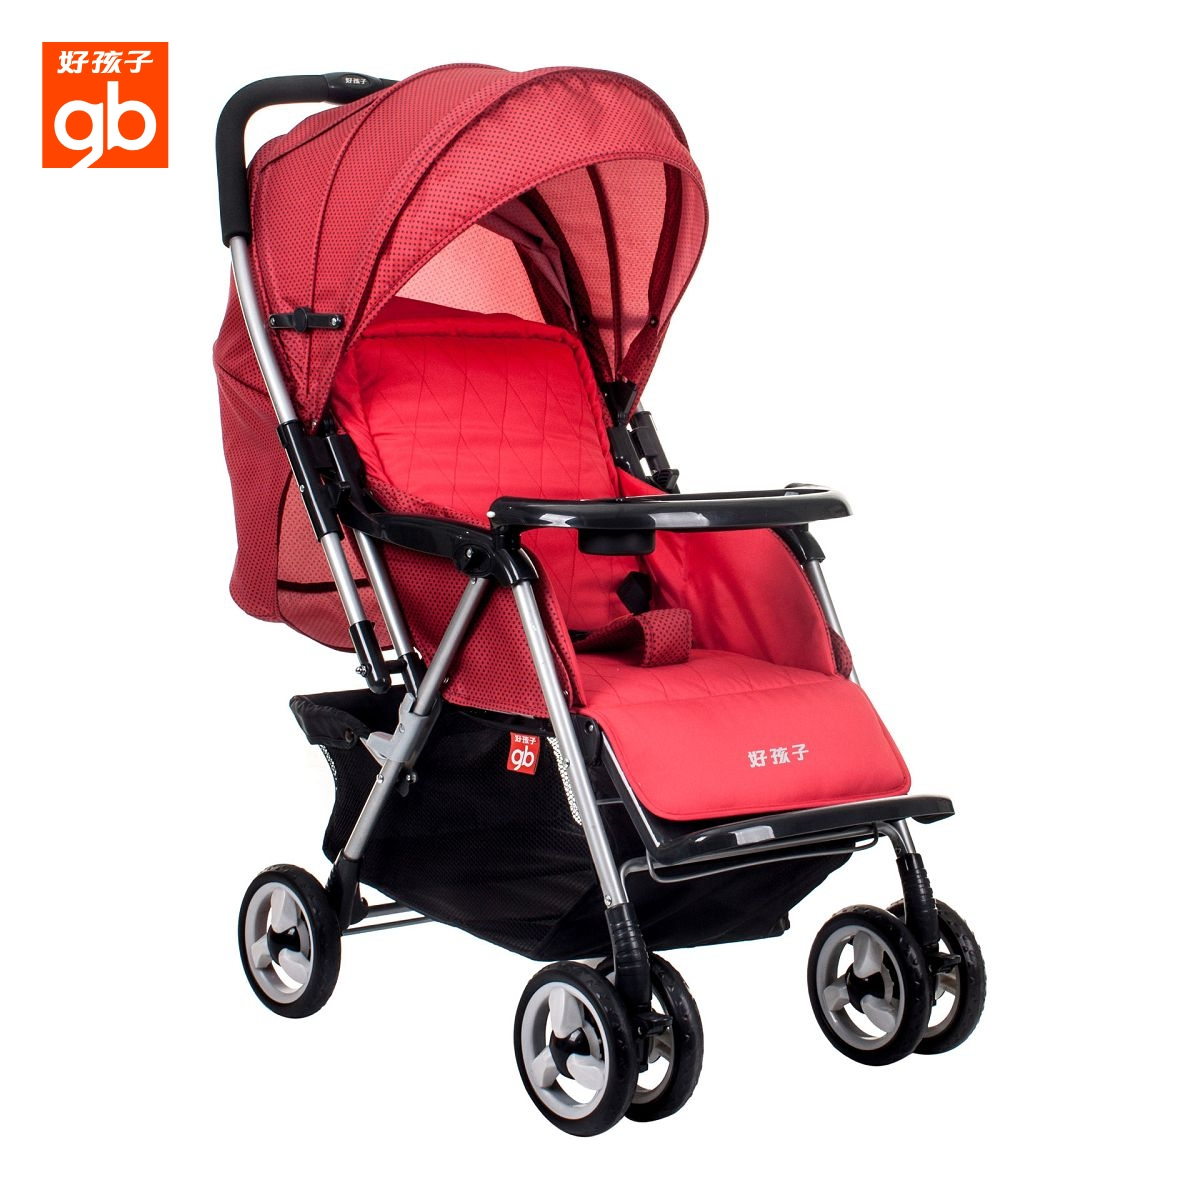 World famous brand gb baby stroller C258W baby carriage can lie down on a portable folding shock absorber Free shipping(China (Mainland))